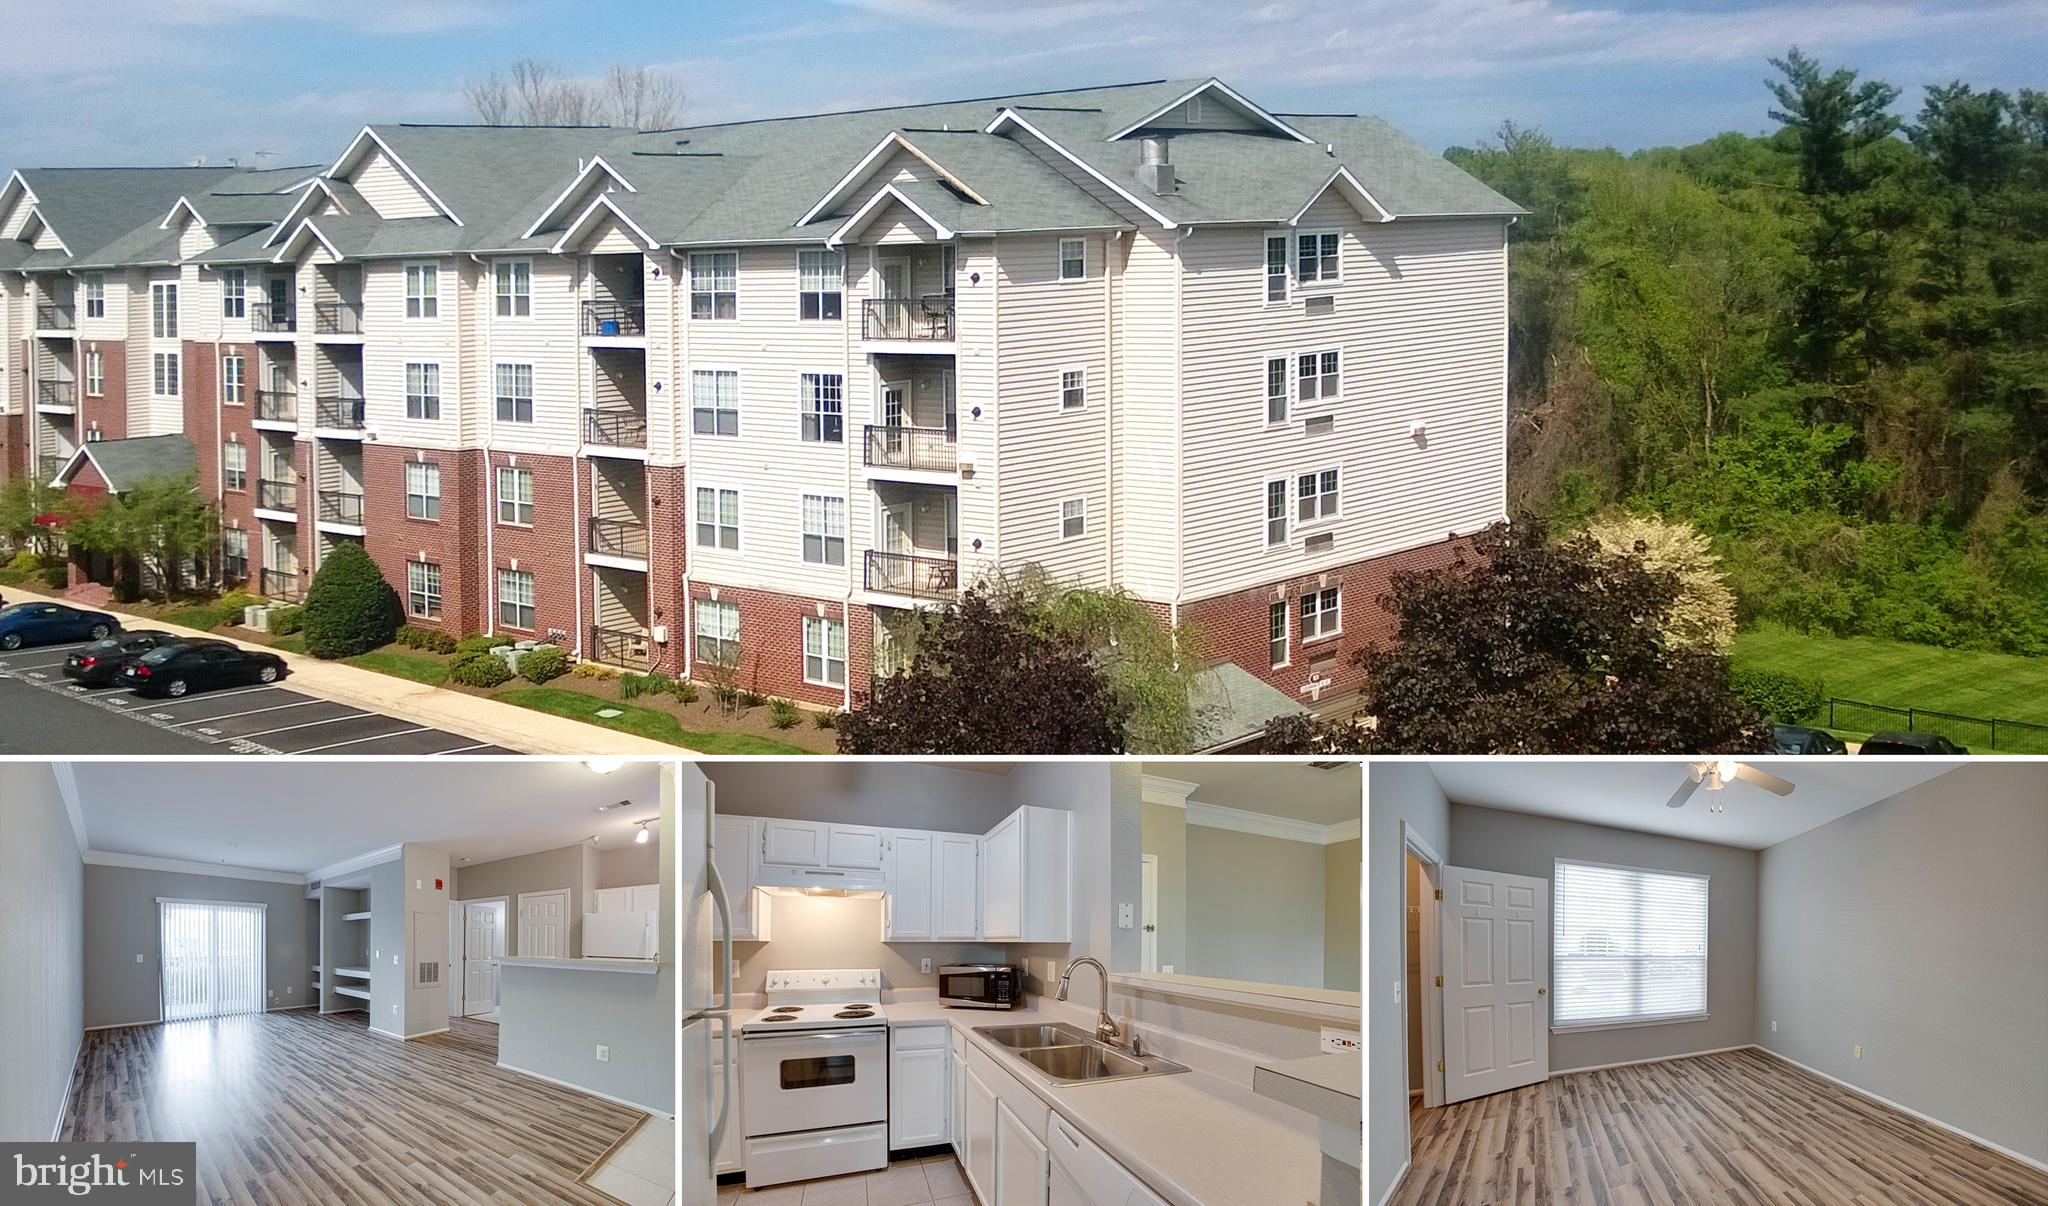 Great ground level condo - walk to McLean Silver Line metro + Wegmans across the street opening soon. The unit has laminate floors and newer windows and is in a controlled access building. Larger 735 sqft Danielle model. 1 reserved parking spot + 2 guest tags. The Gates of McLean is a gated community with great amenities like an outdoor swimming pool, gym, clubhouse, sports court, grill area and walking paths. Minutes to everything in Tysons and minutes from toll road.